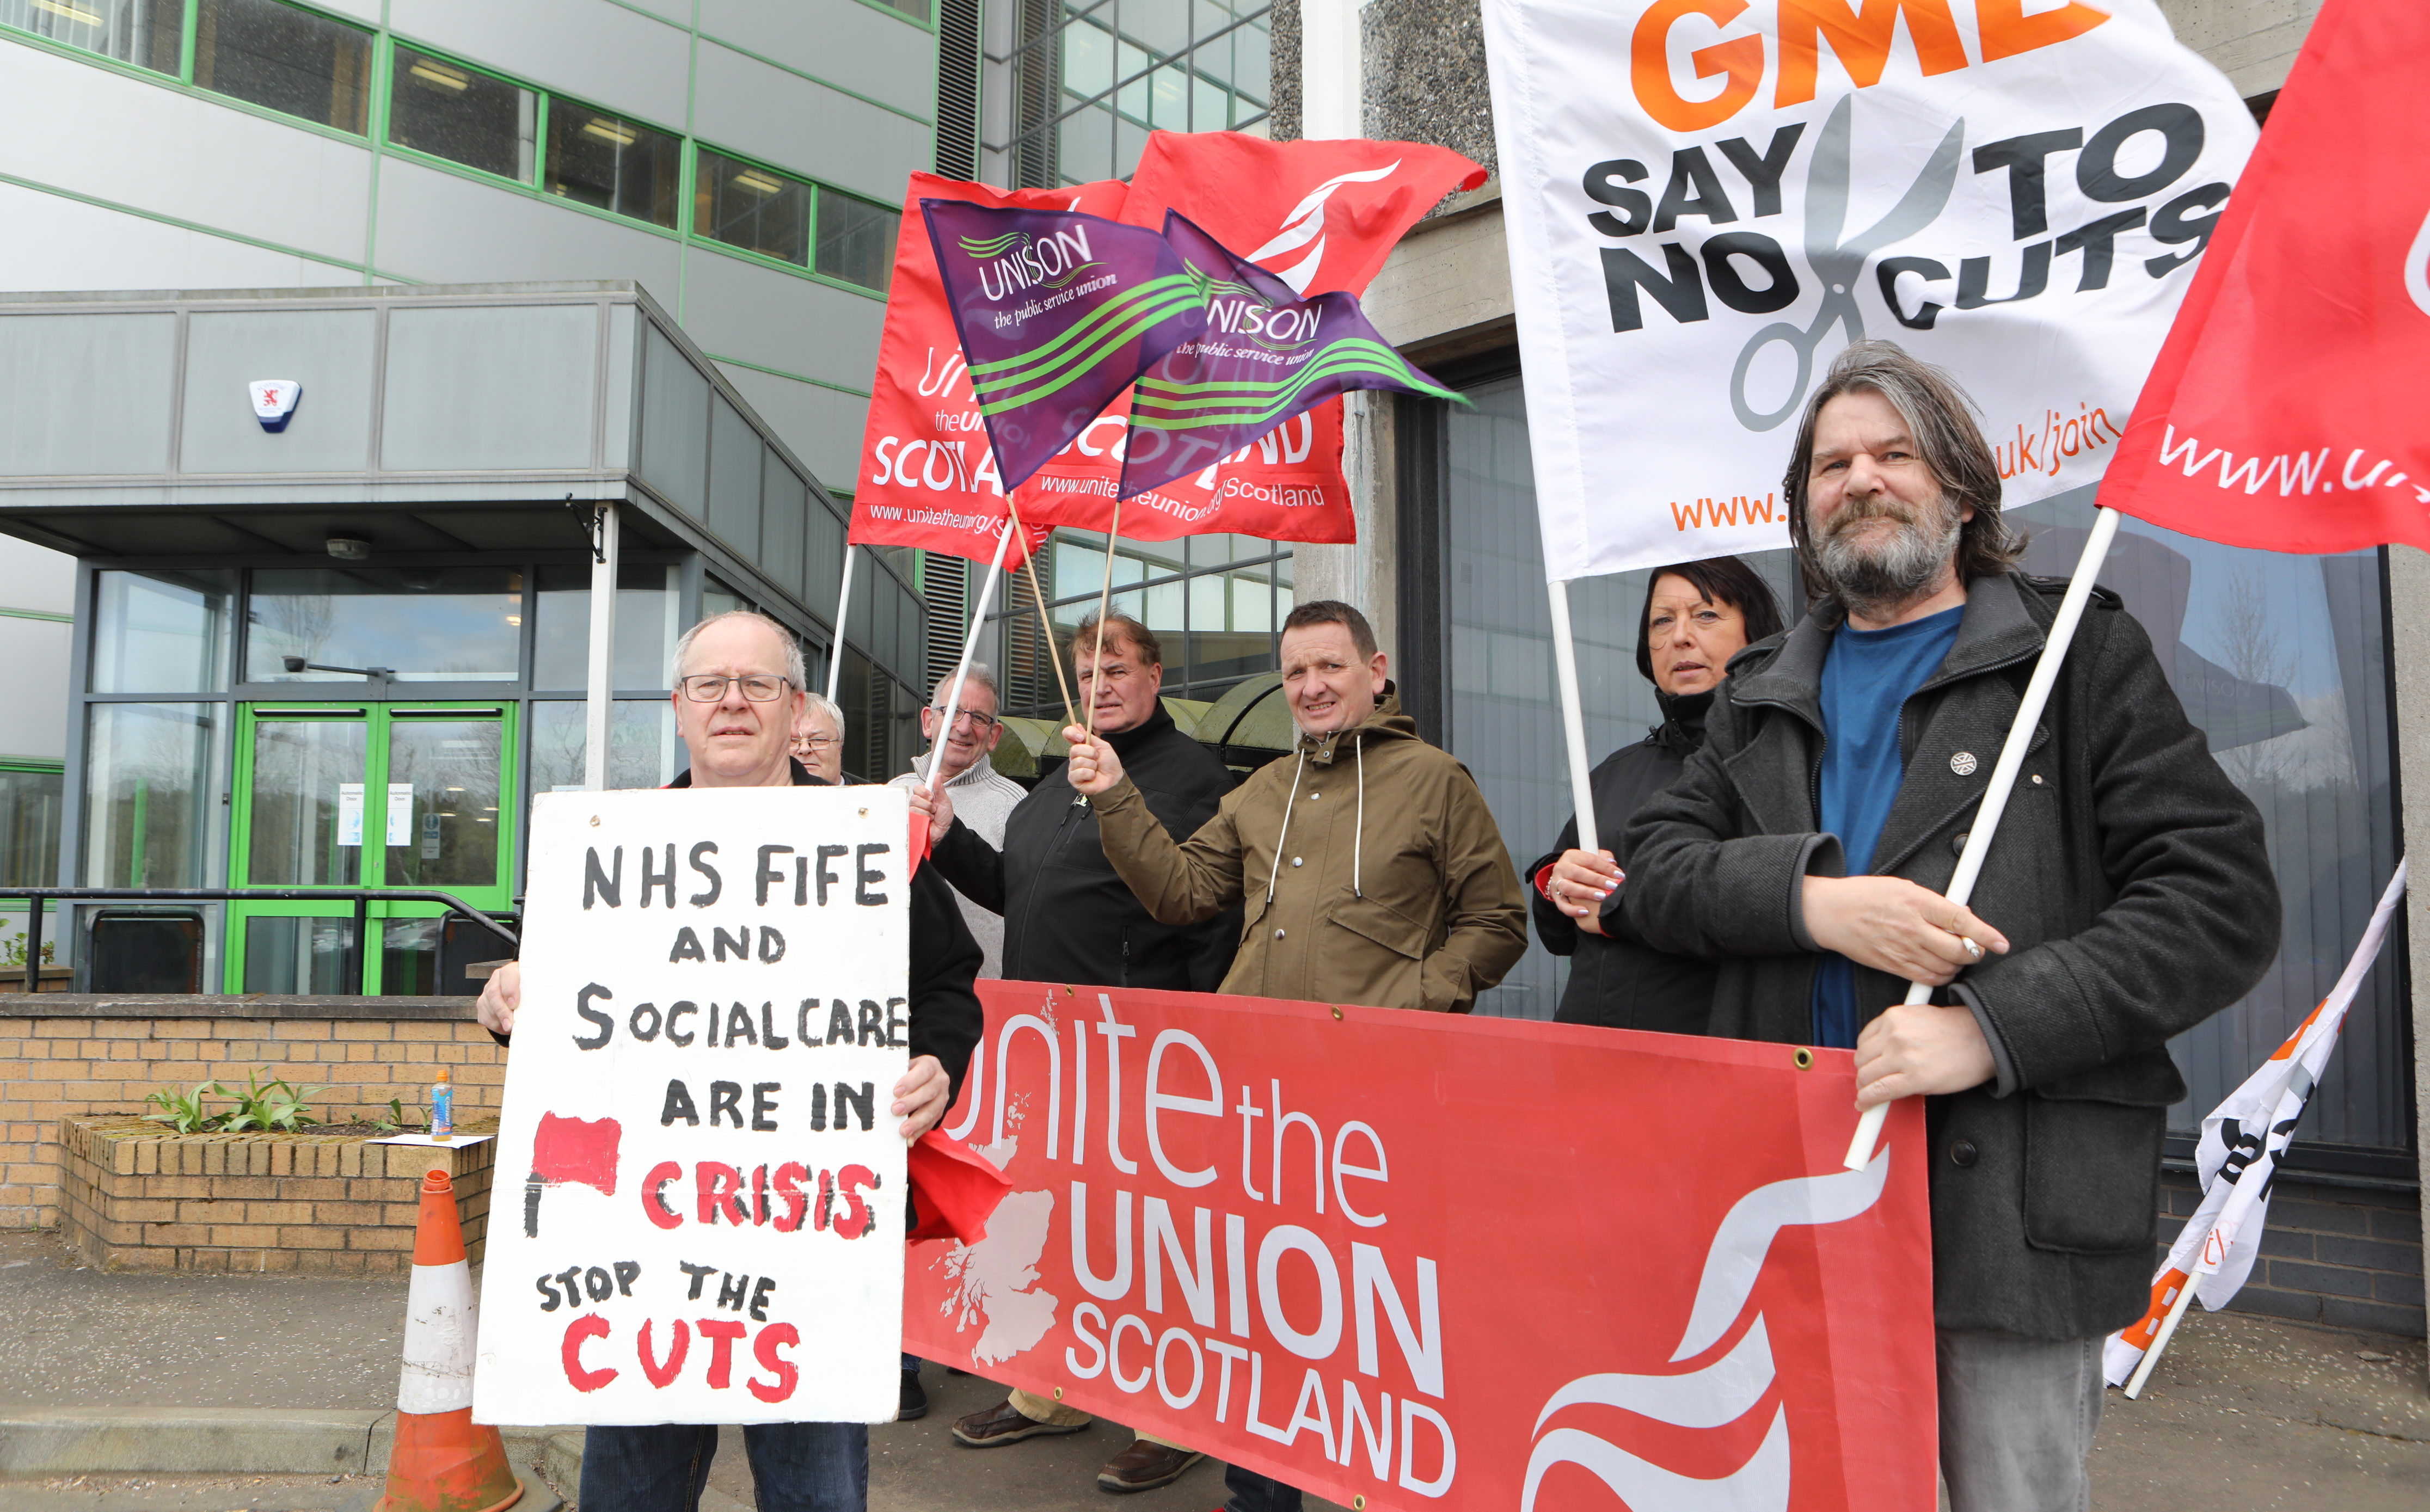 Protesters outside Fife House in Glenrothes